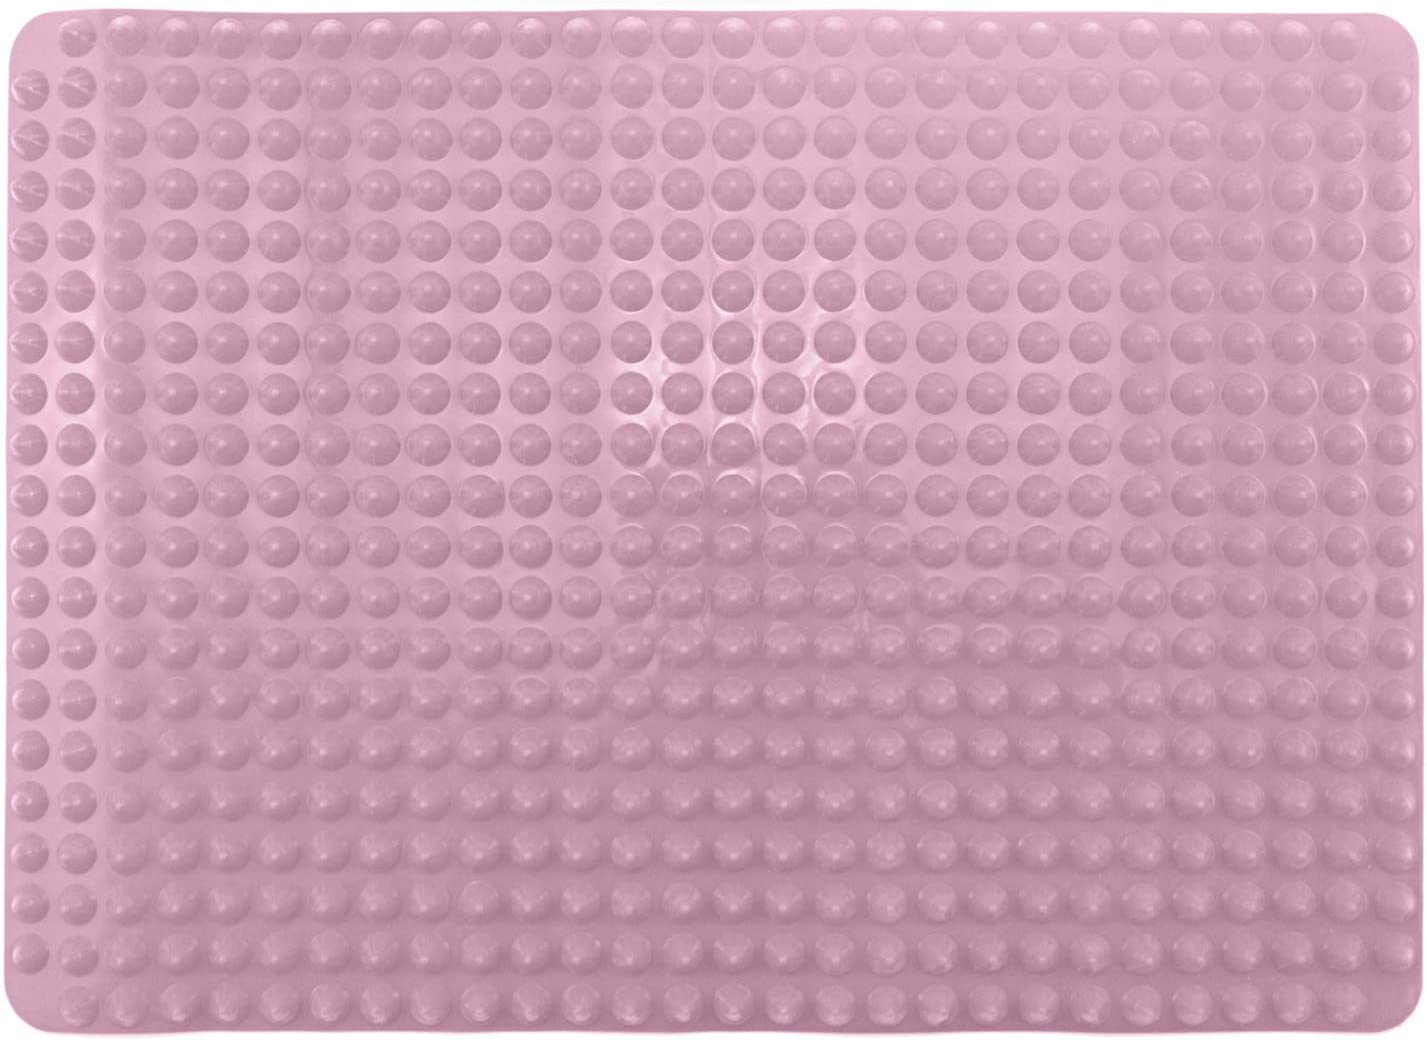 EHZ Silicone Baking Mat Non Stick Oven Baking Tray Mat Food Safe Oven Protector Liner for Toaster Oven, Sheets, Trays, Pans, Baking, Cooking - 16